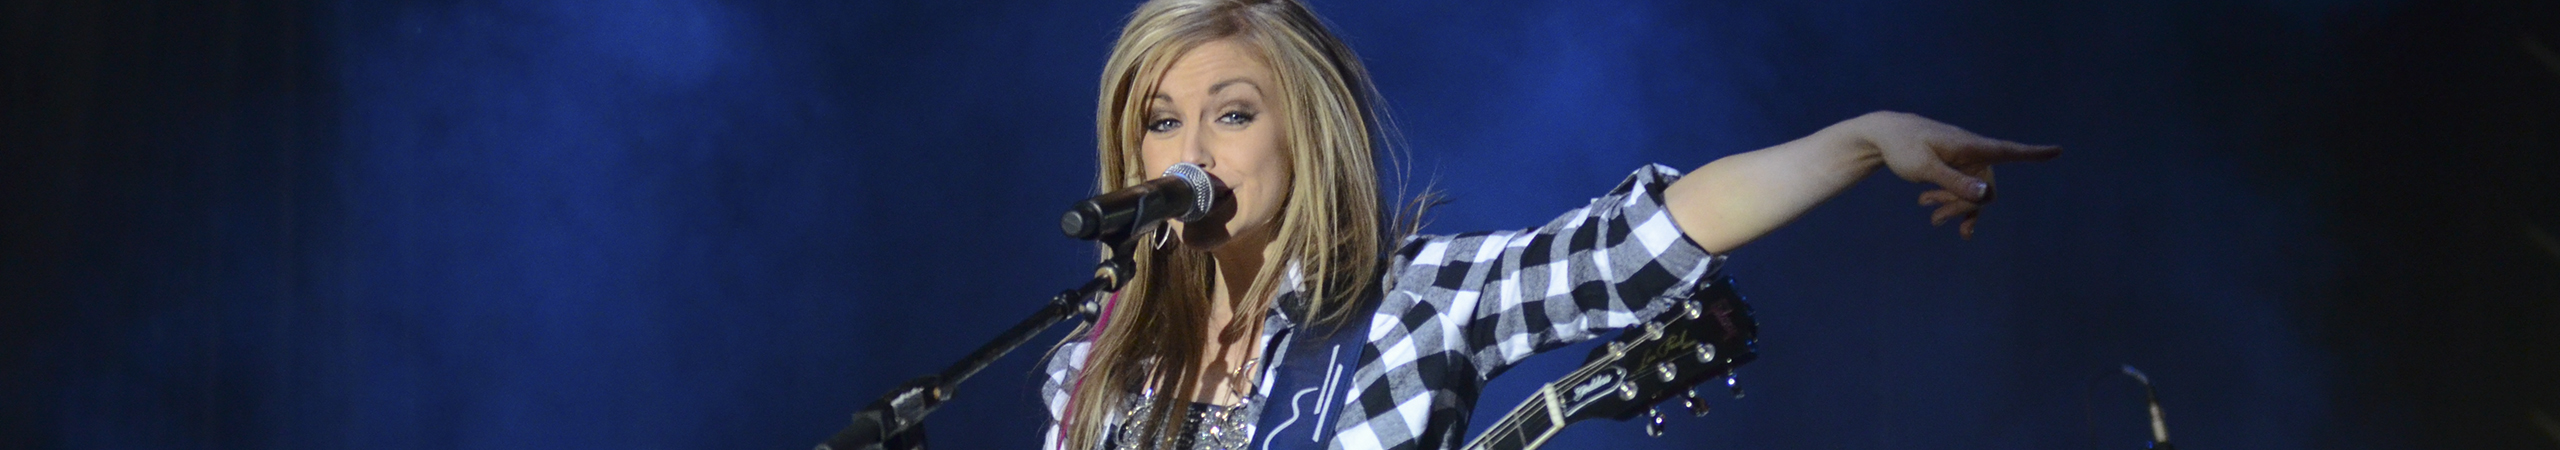 Lindsay Ell Concert at the Greater Jacksonville Fair